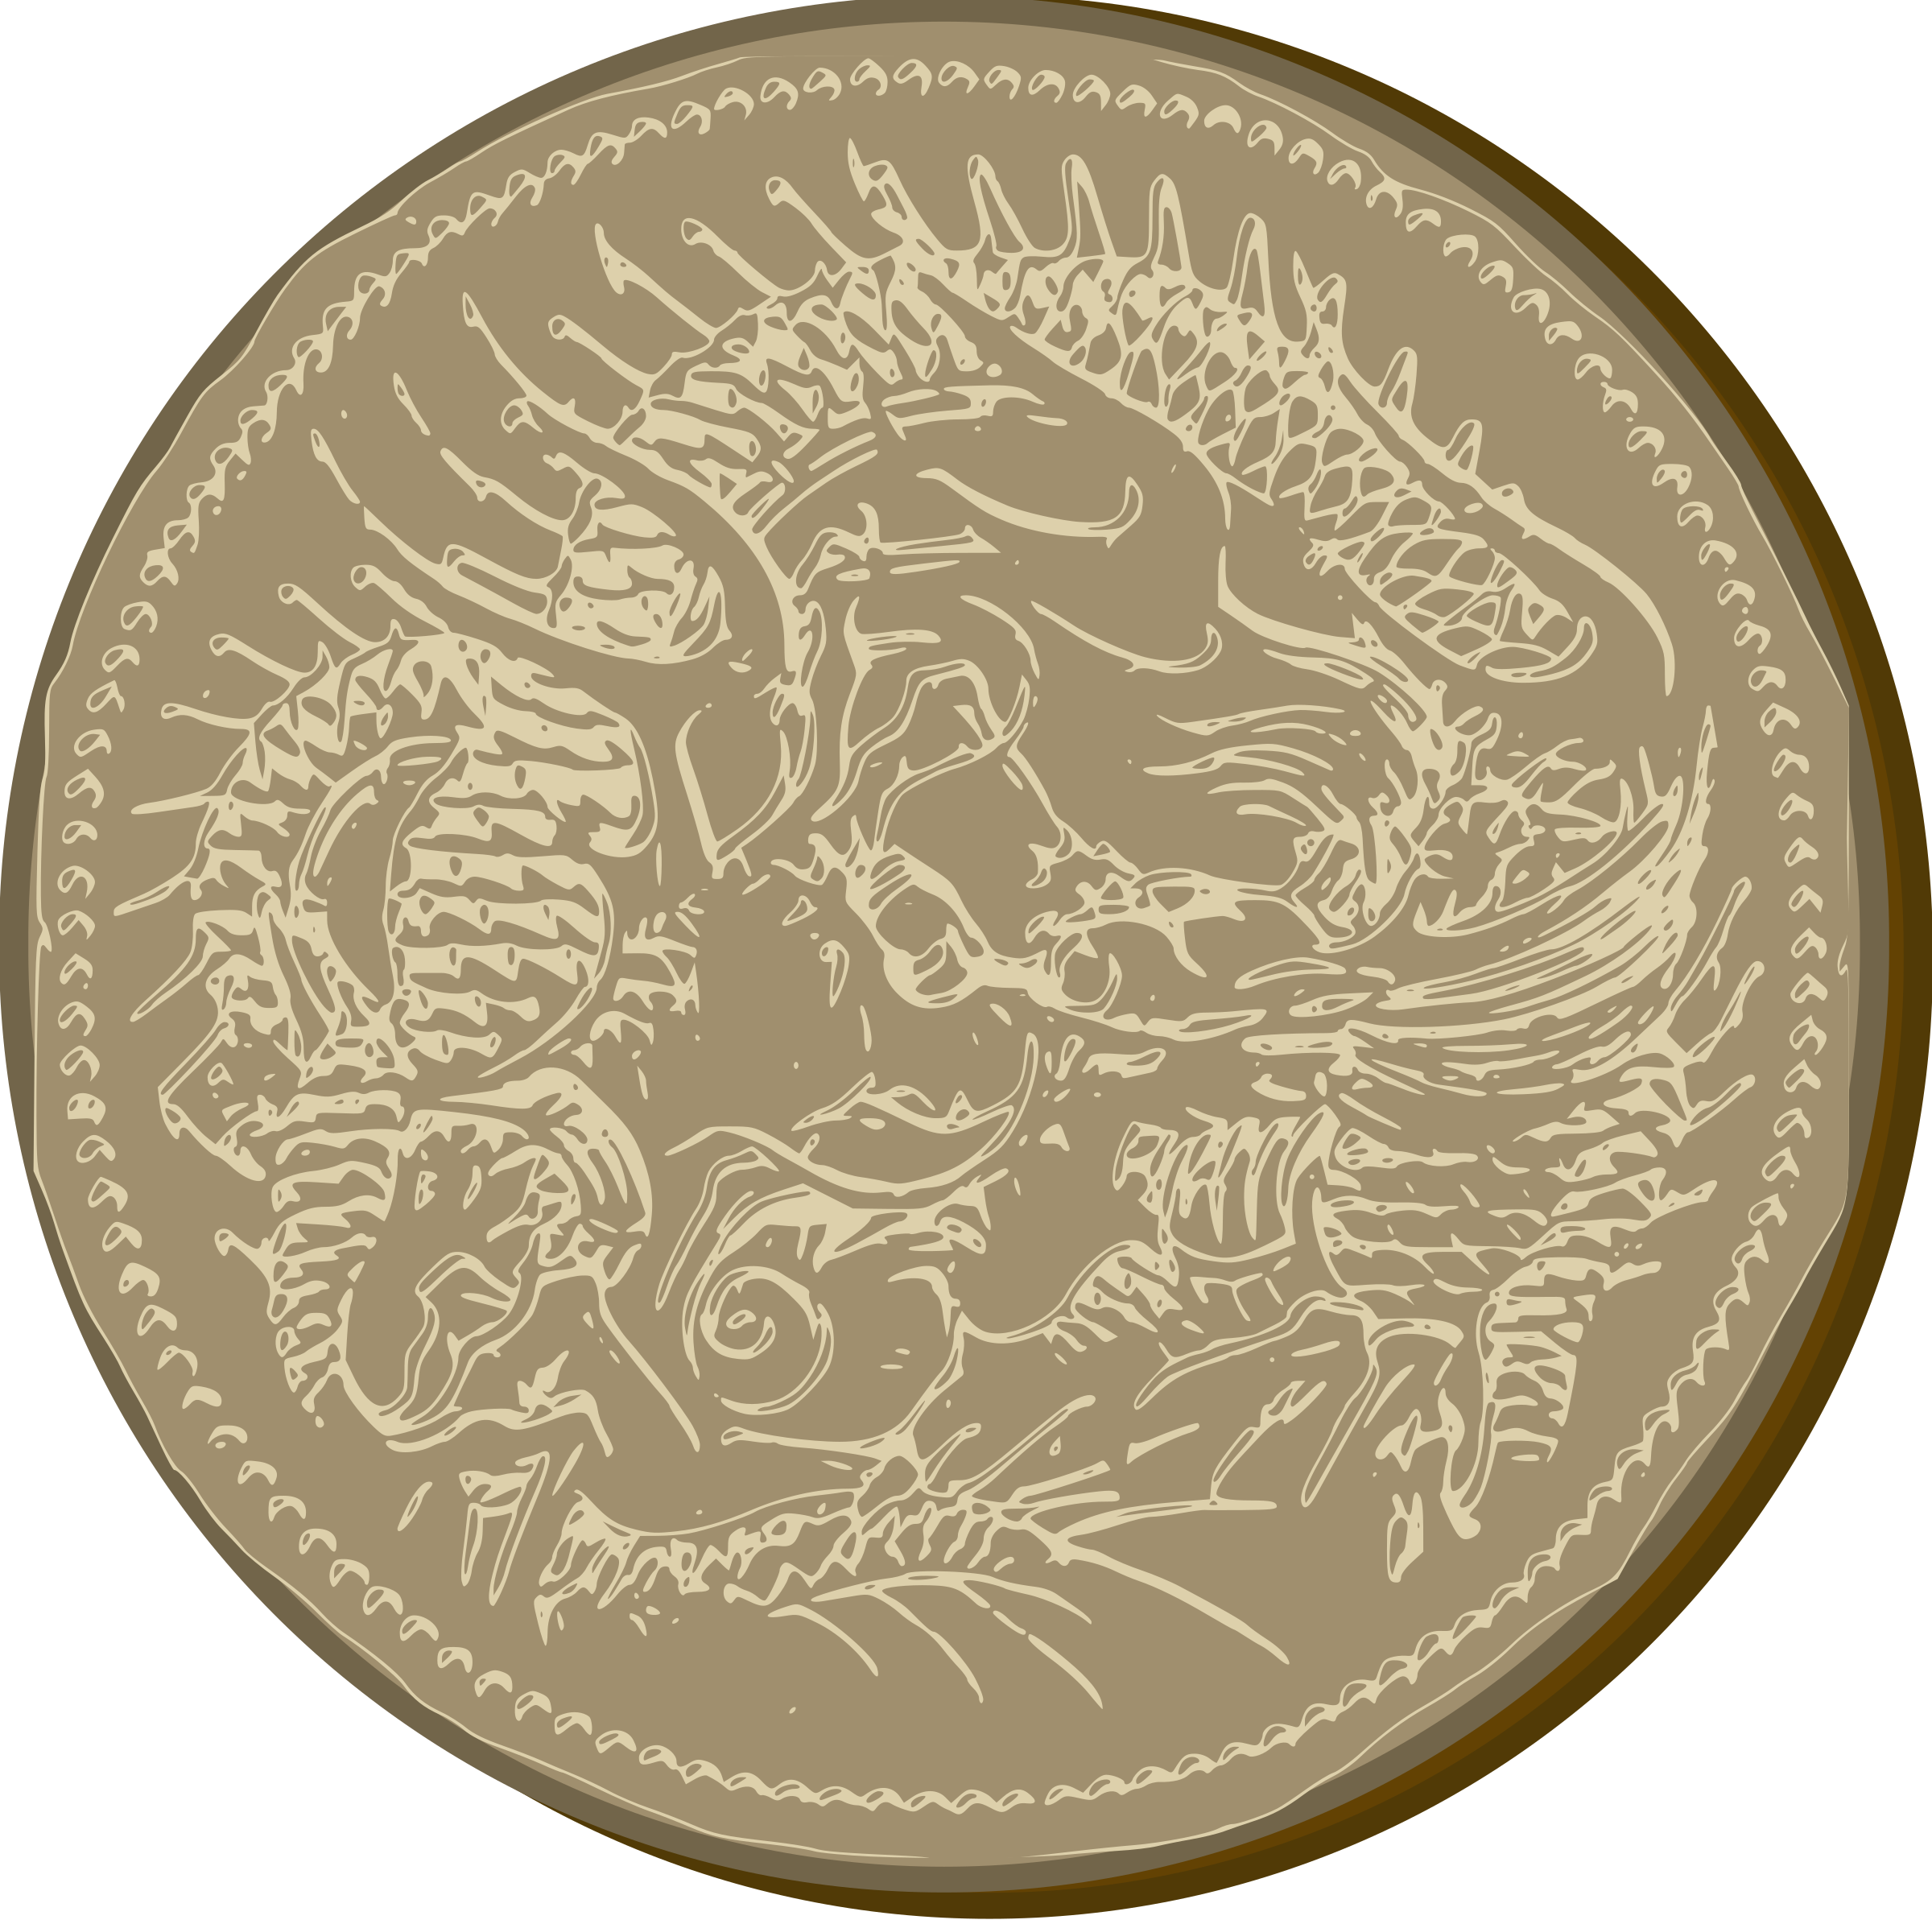 Old Dragon Coin by j4p4n